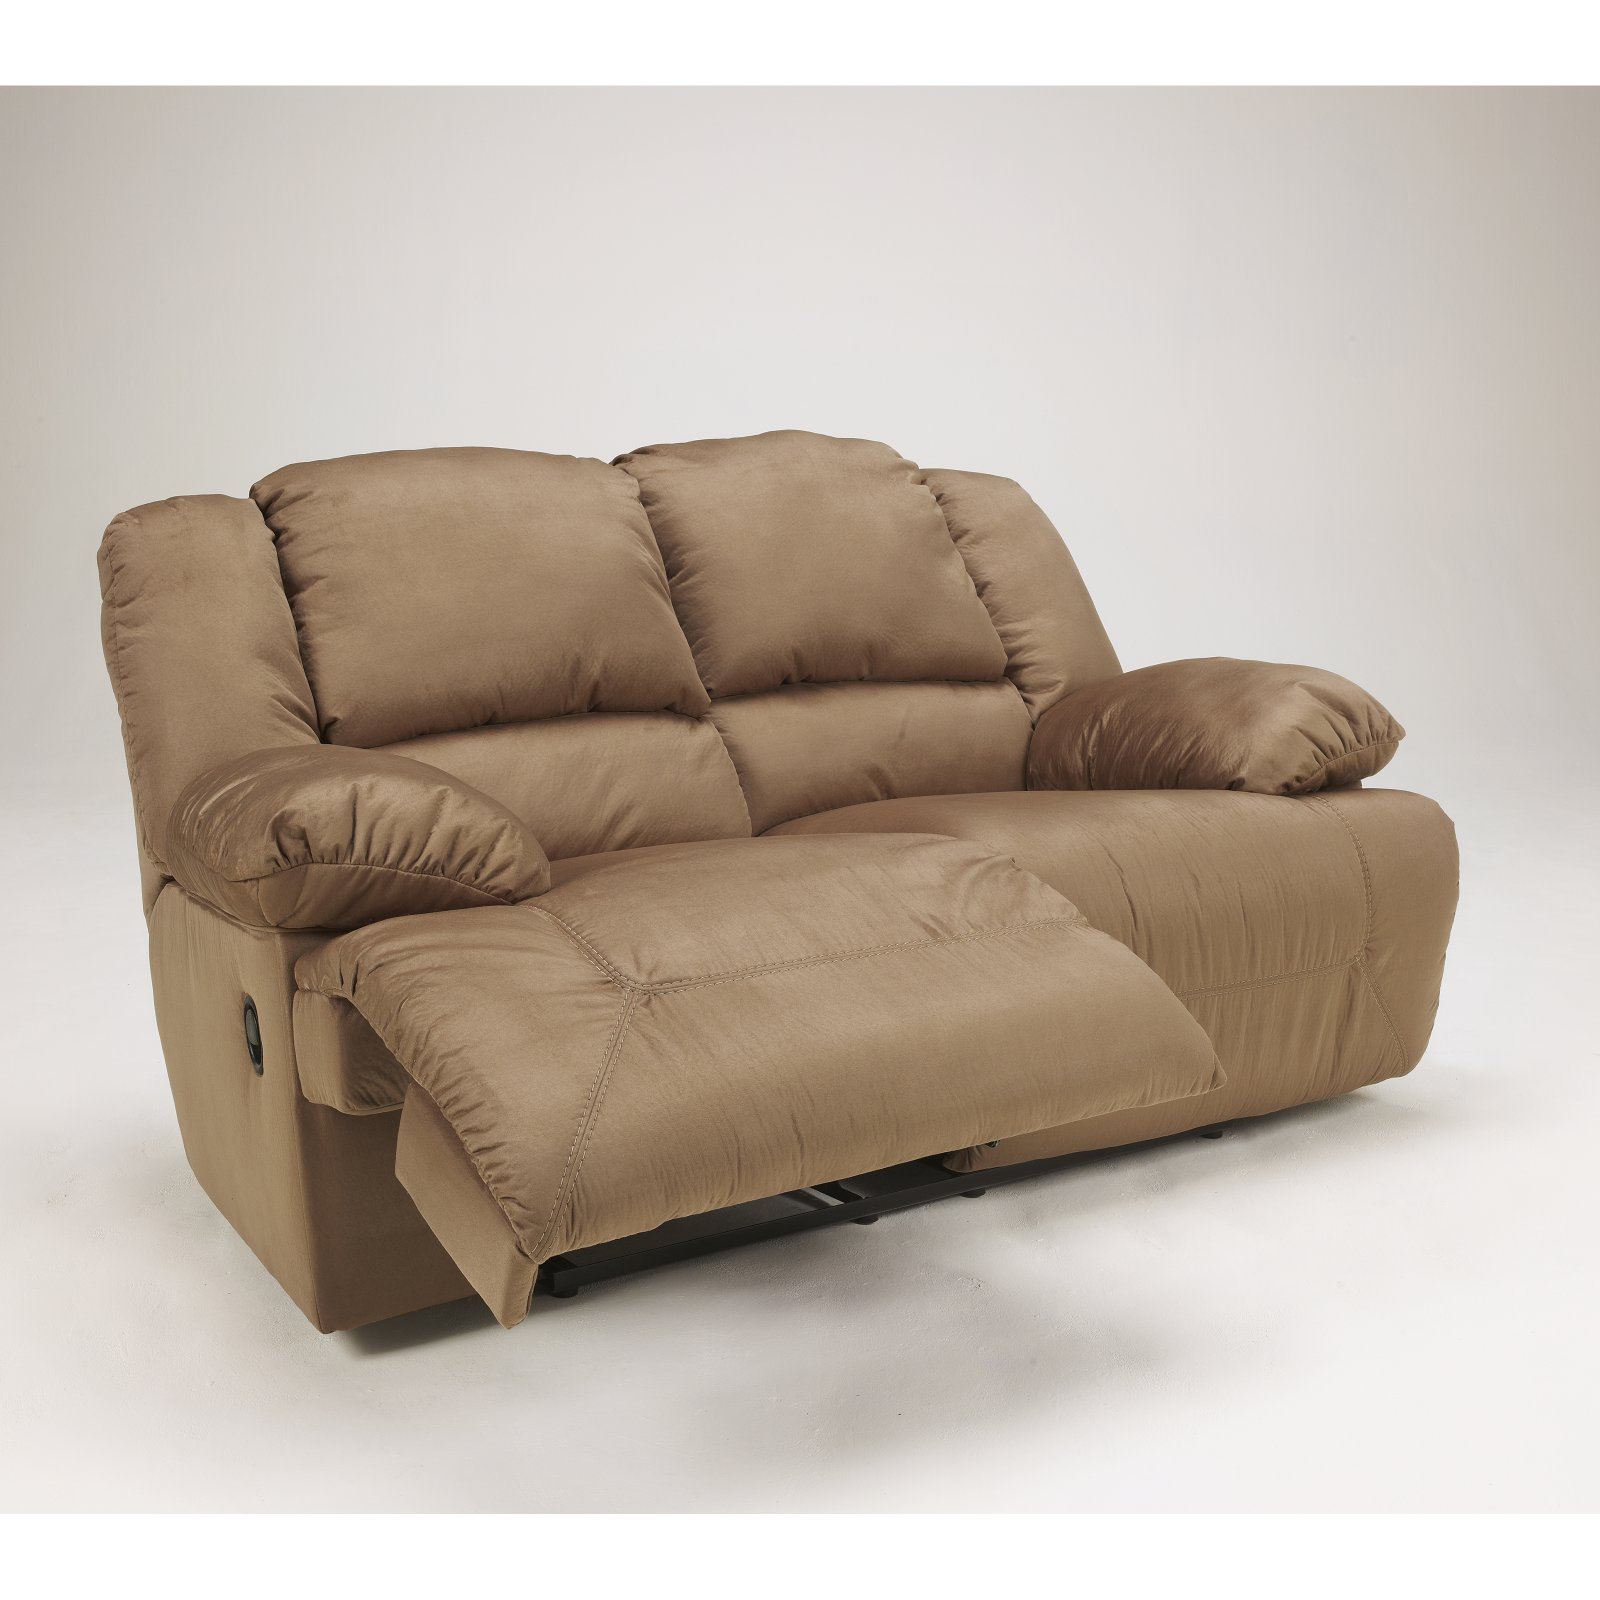 Signature Design by Ashley Hogan Reclining Loveseat